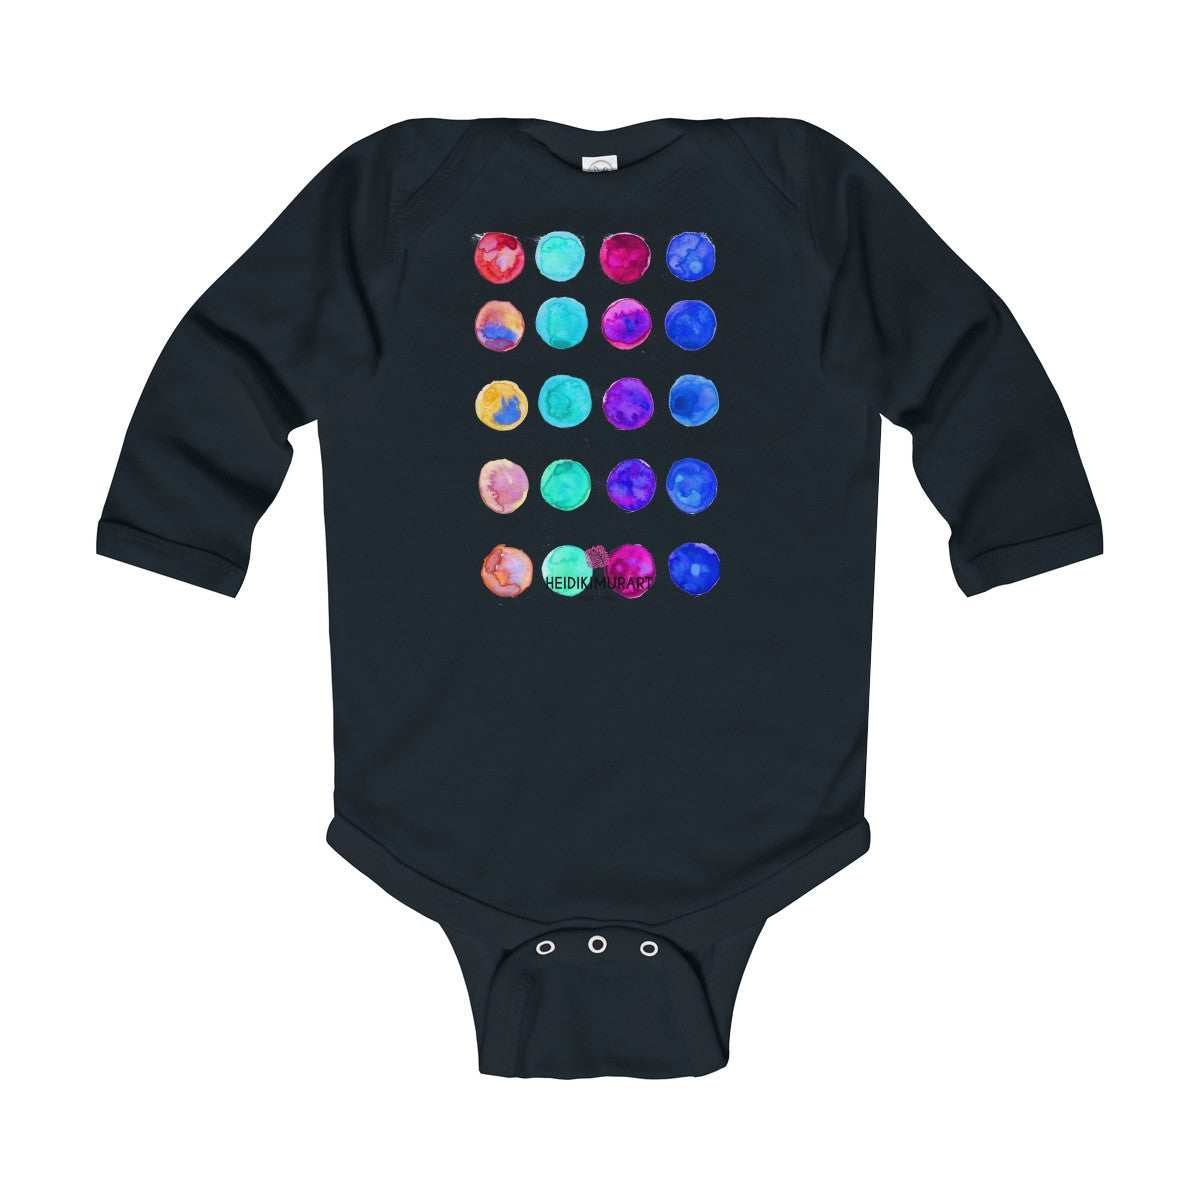 Polka Dots Printed Cute Super Soft Cotton Infant Long Sleeve Bodysuit - Made in UK-Kids clothes-Black-18M-Heidi Kimura Art LLC